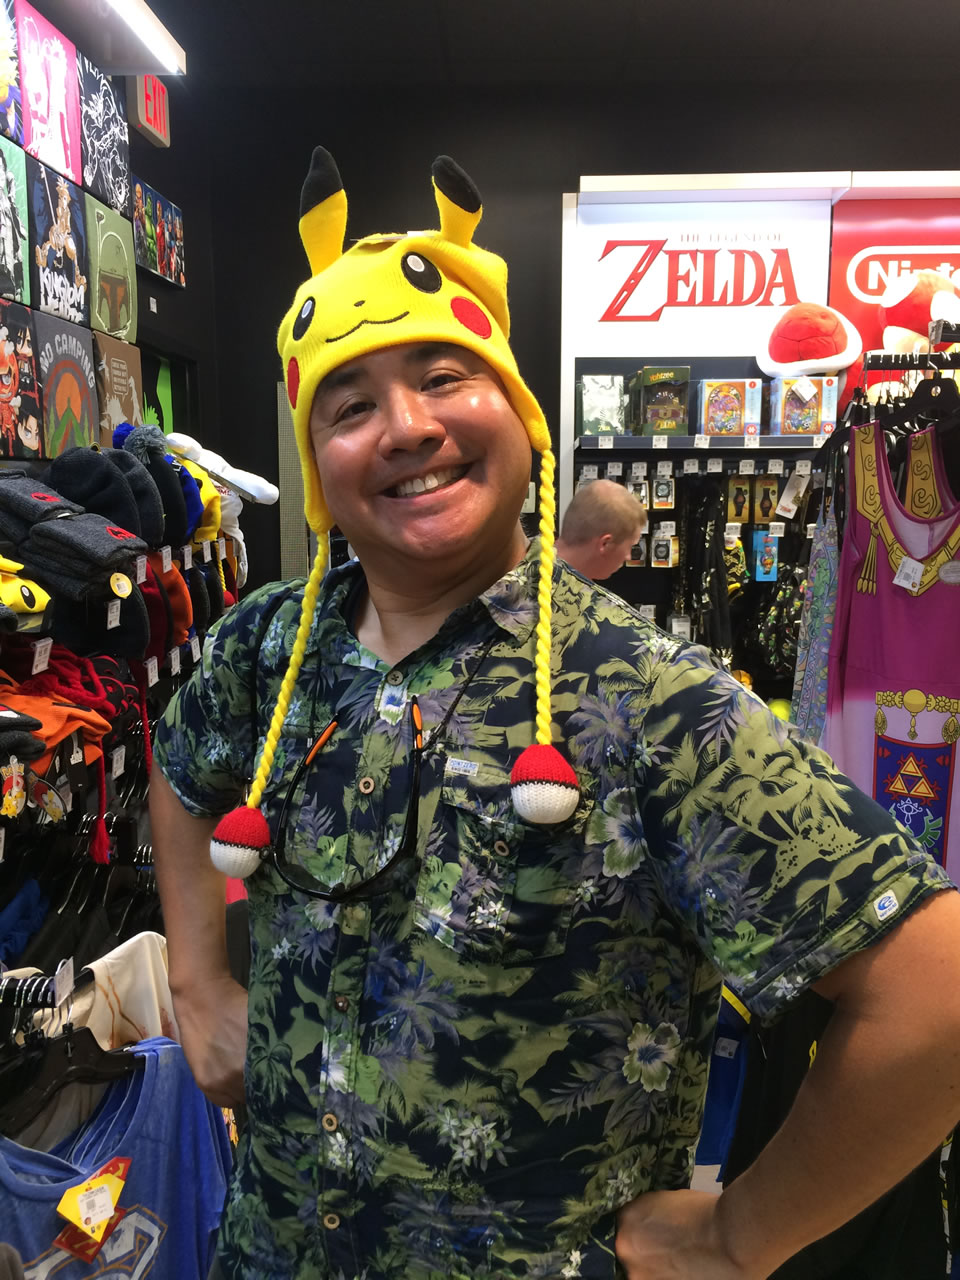 31 thinkgeek store - joey in pikachu hat